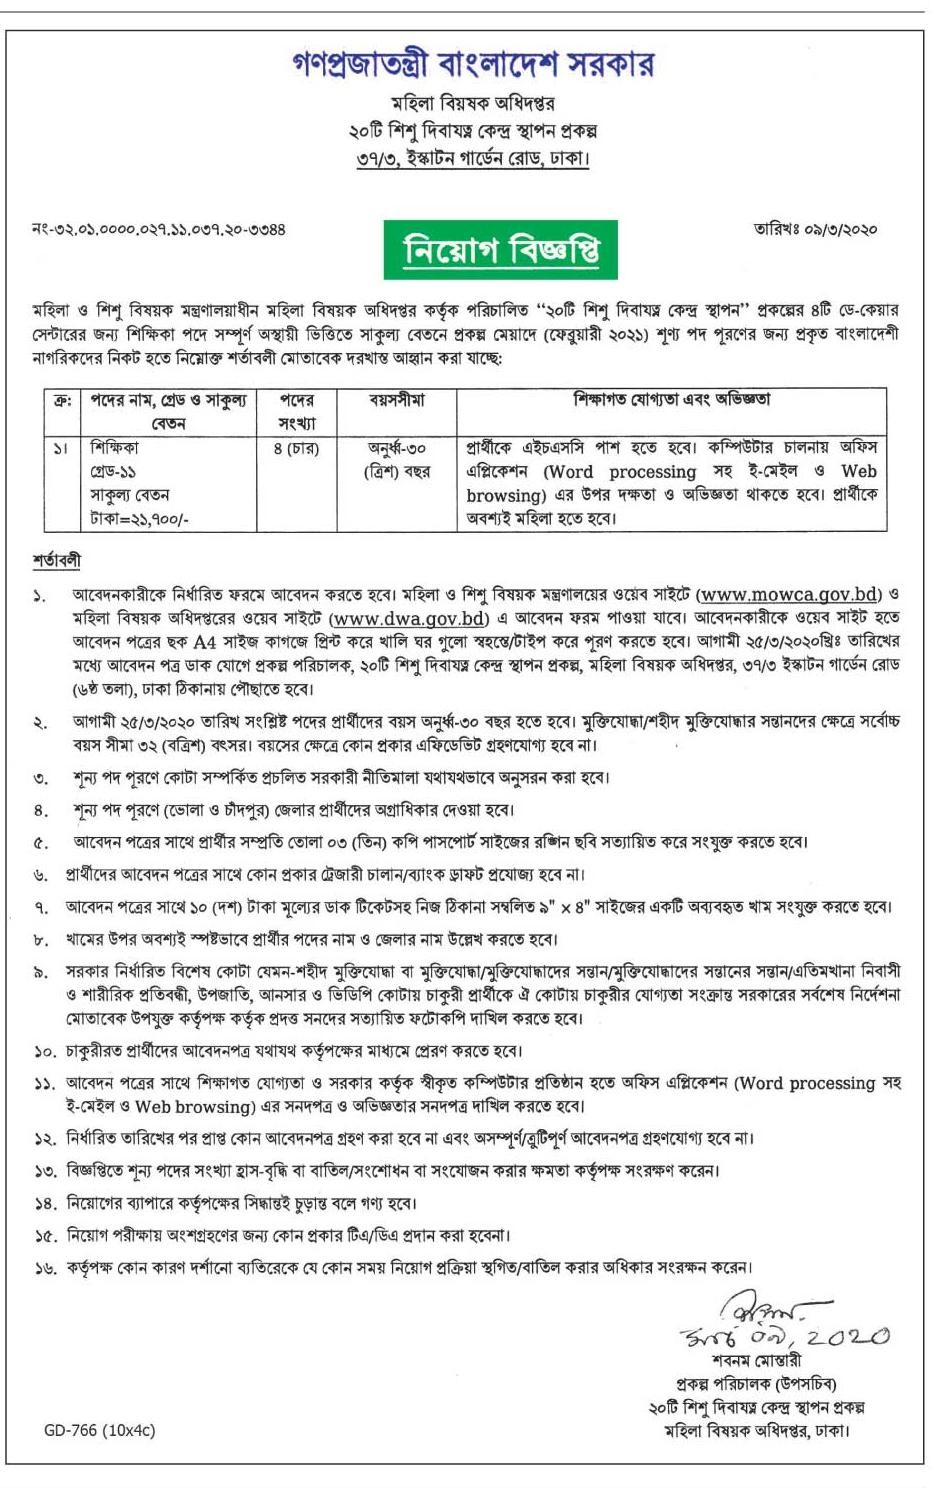 Directorate of Women Affairs Job Circular 2020